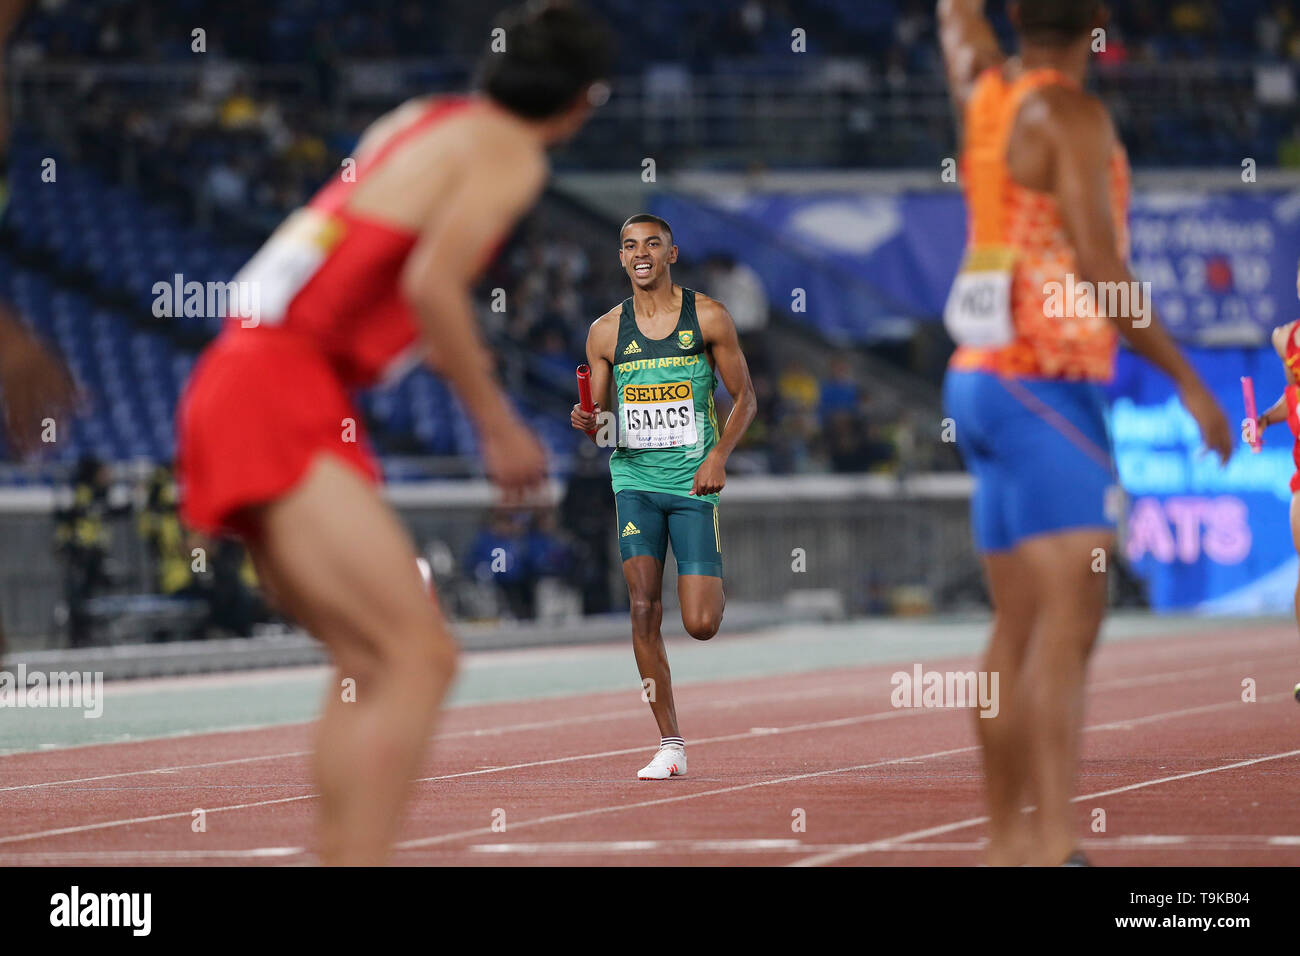 YOKOHAMA, JAPAN - MAY 10: Gardeo Isaacs of South Africa during Day 1 of the 2019 IAAF World Relay Championships at the Nissan Stadium on Saturday May 11, 2019 in Yokohama, Japan. (Photo by Roger Sedres for the IAAF) - Stock Image